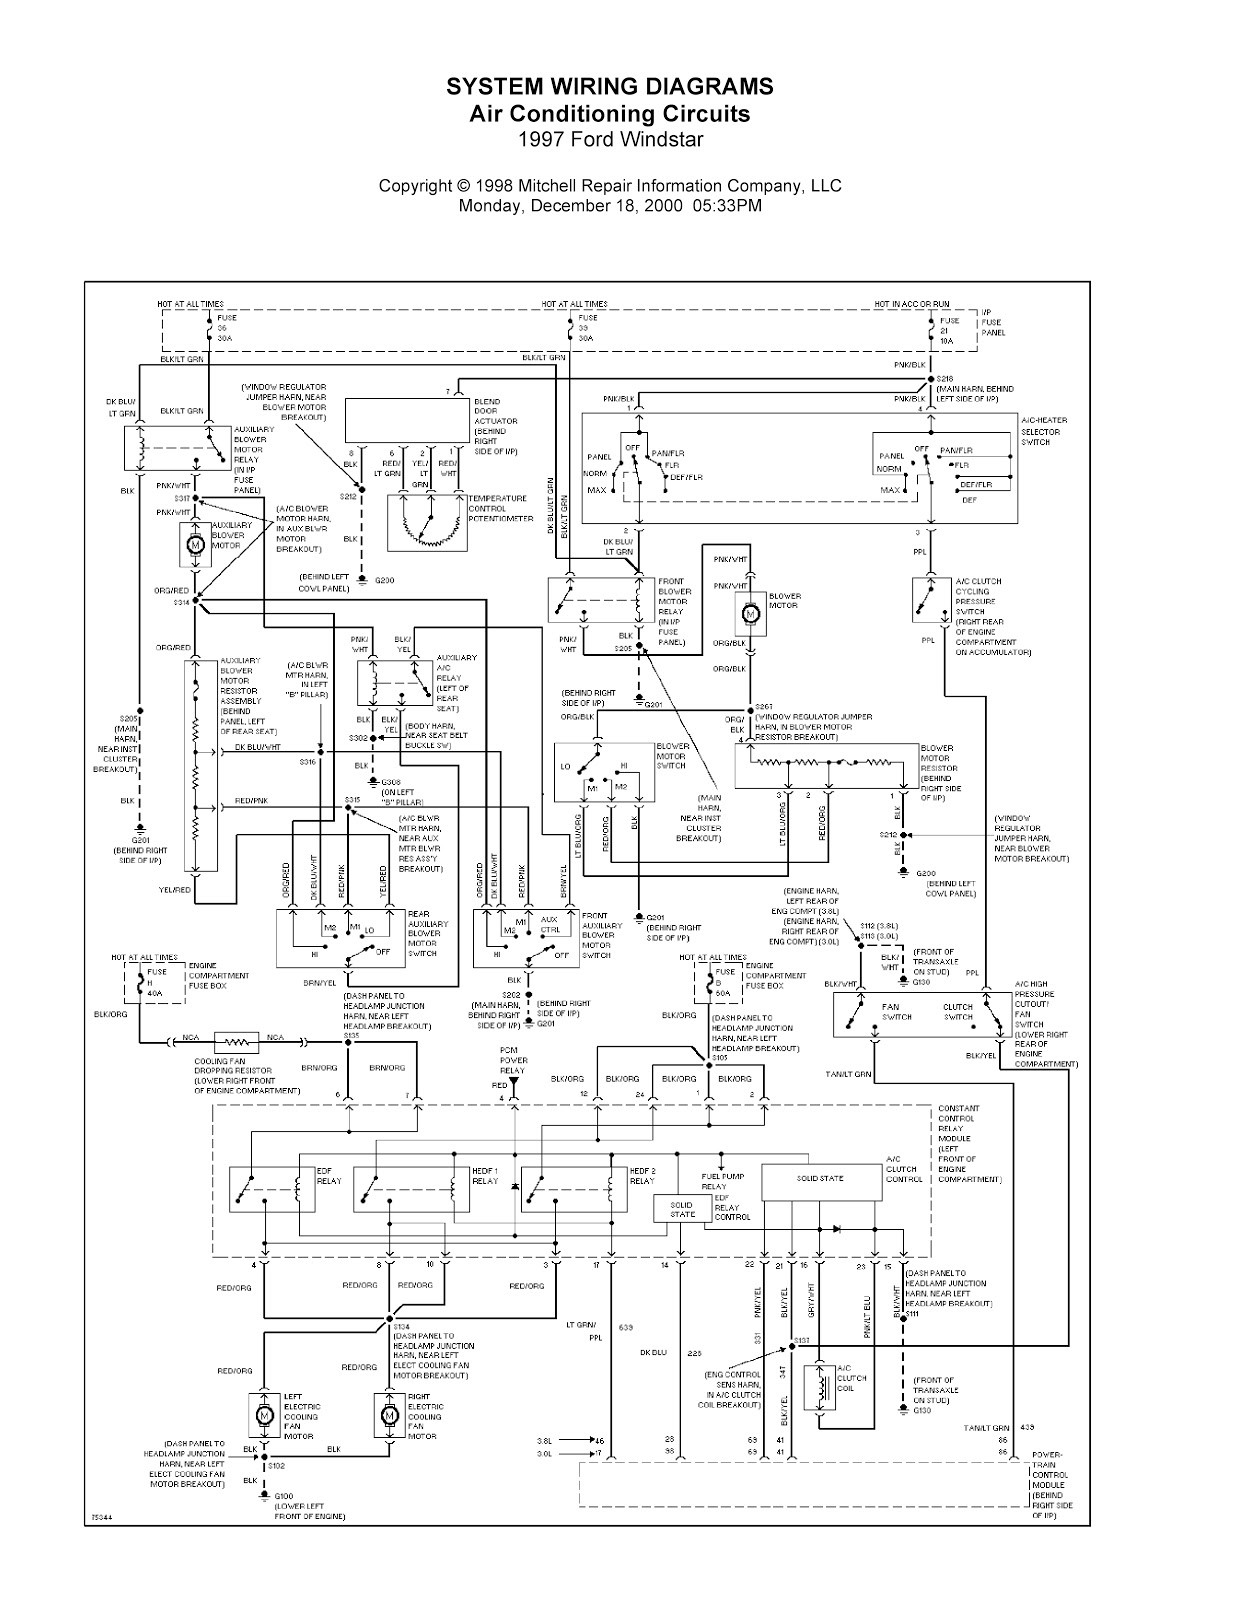 2004 ford Explorer Engine Diagram Fuse Box Diagram Also Free Image About  Wiring Diagram and Schematic